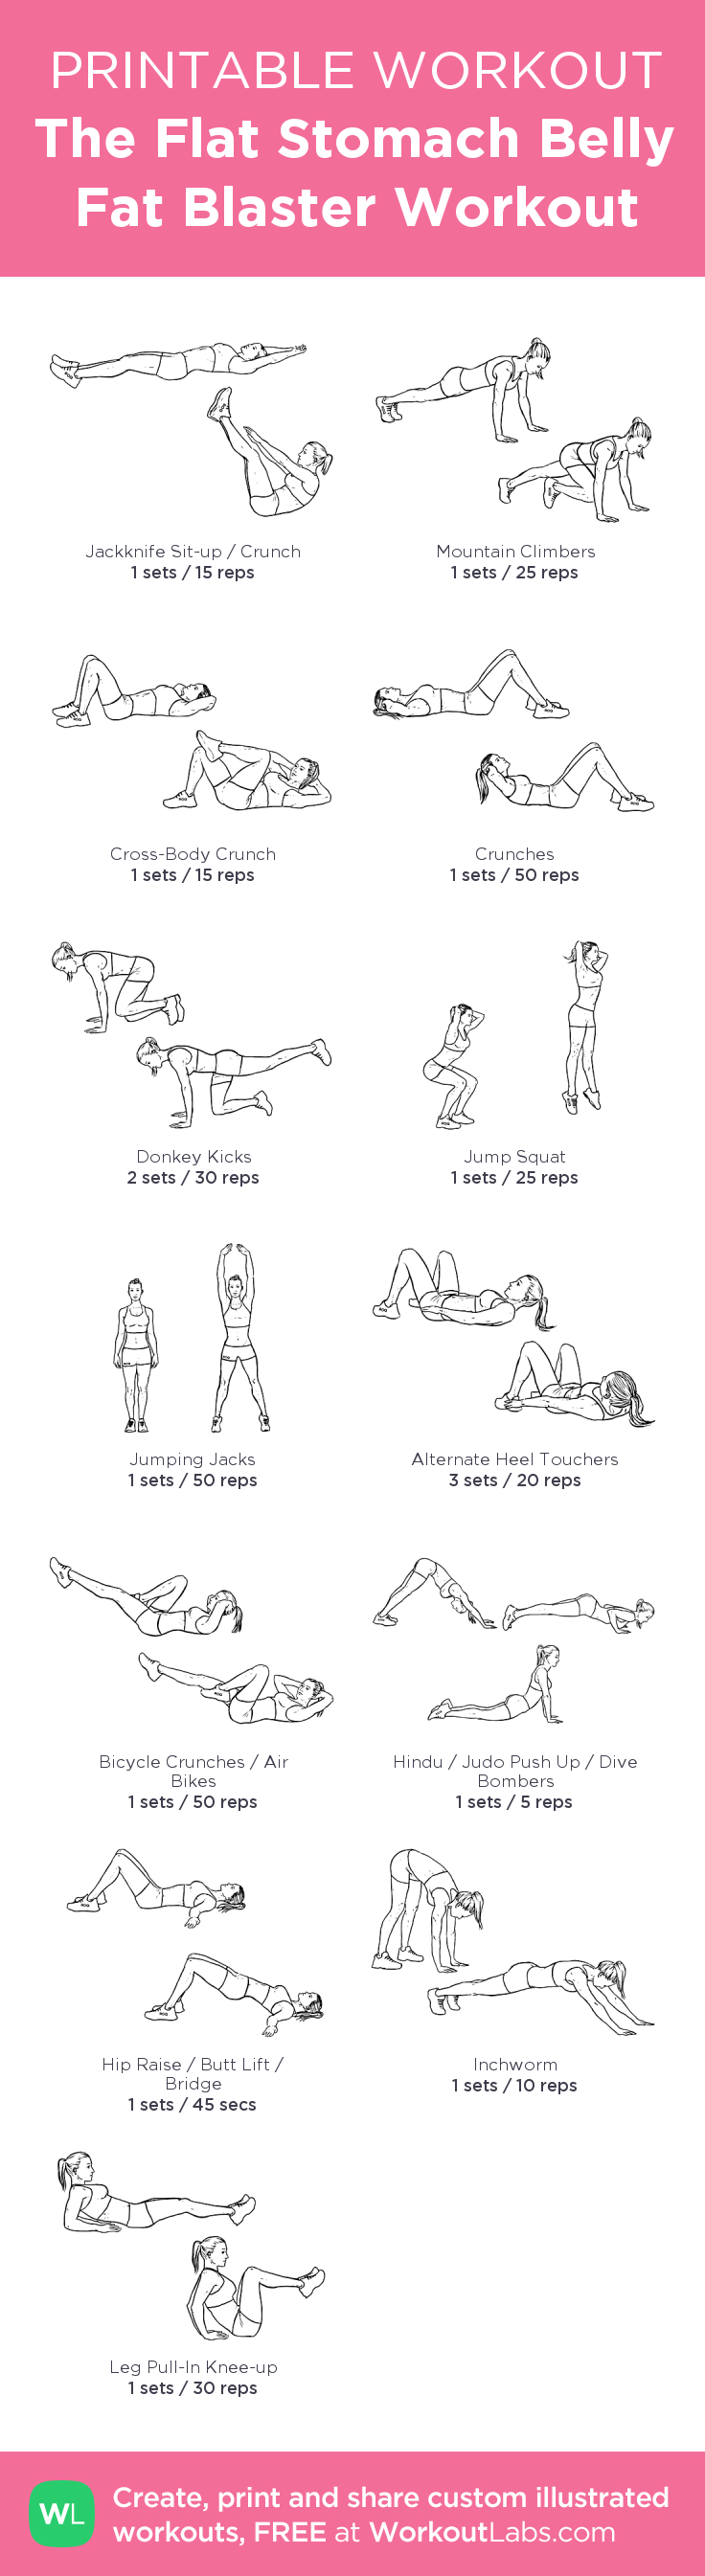 The Flat Stomach Belly Fat Blaster Workout Customize your own